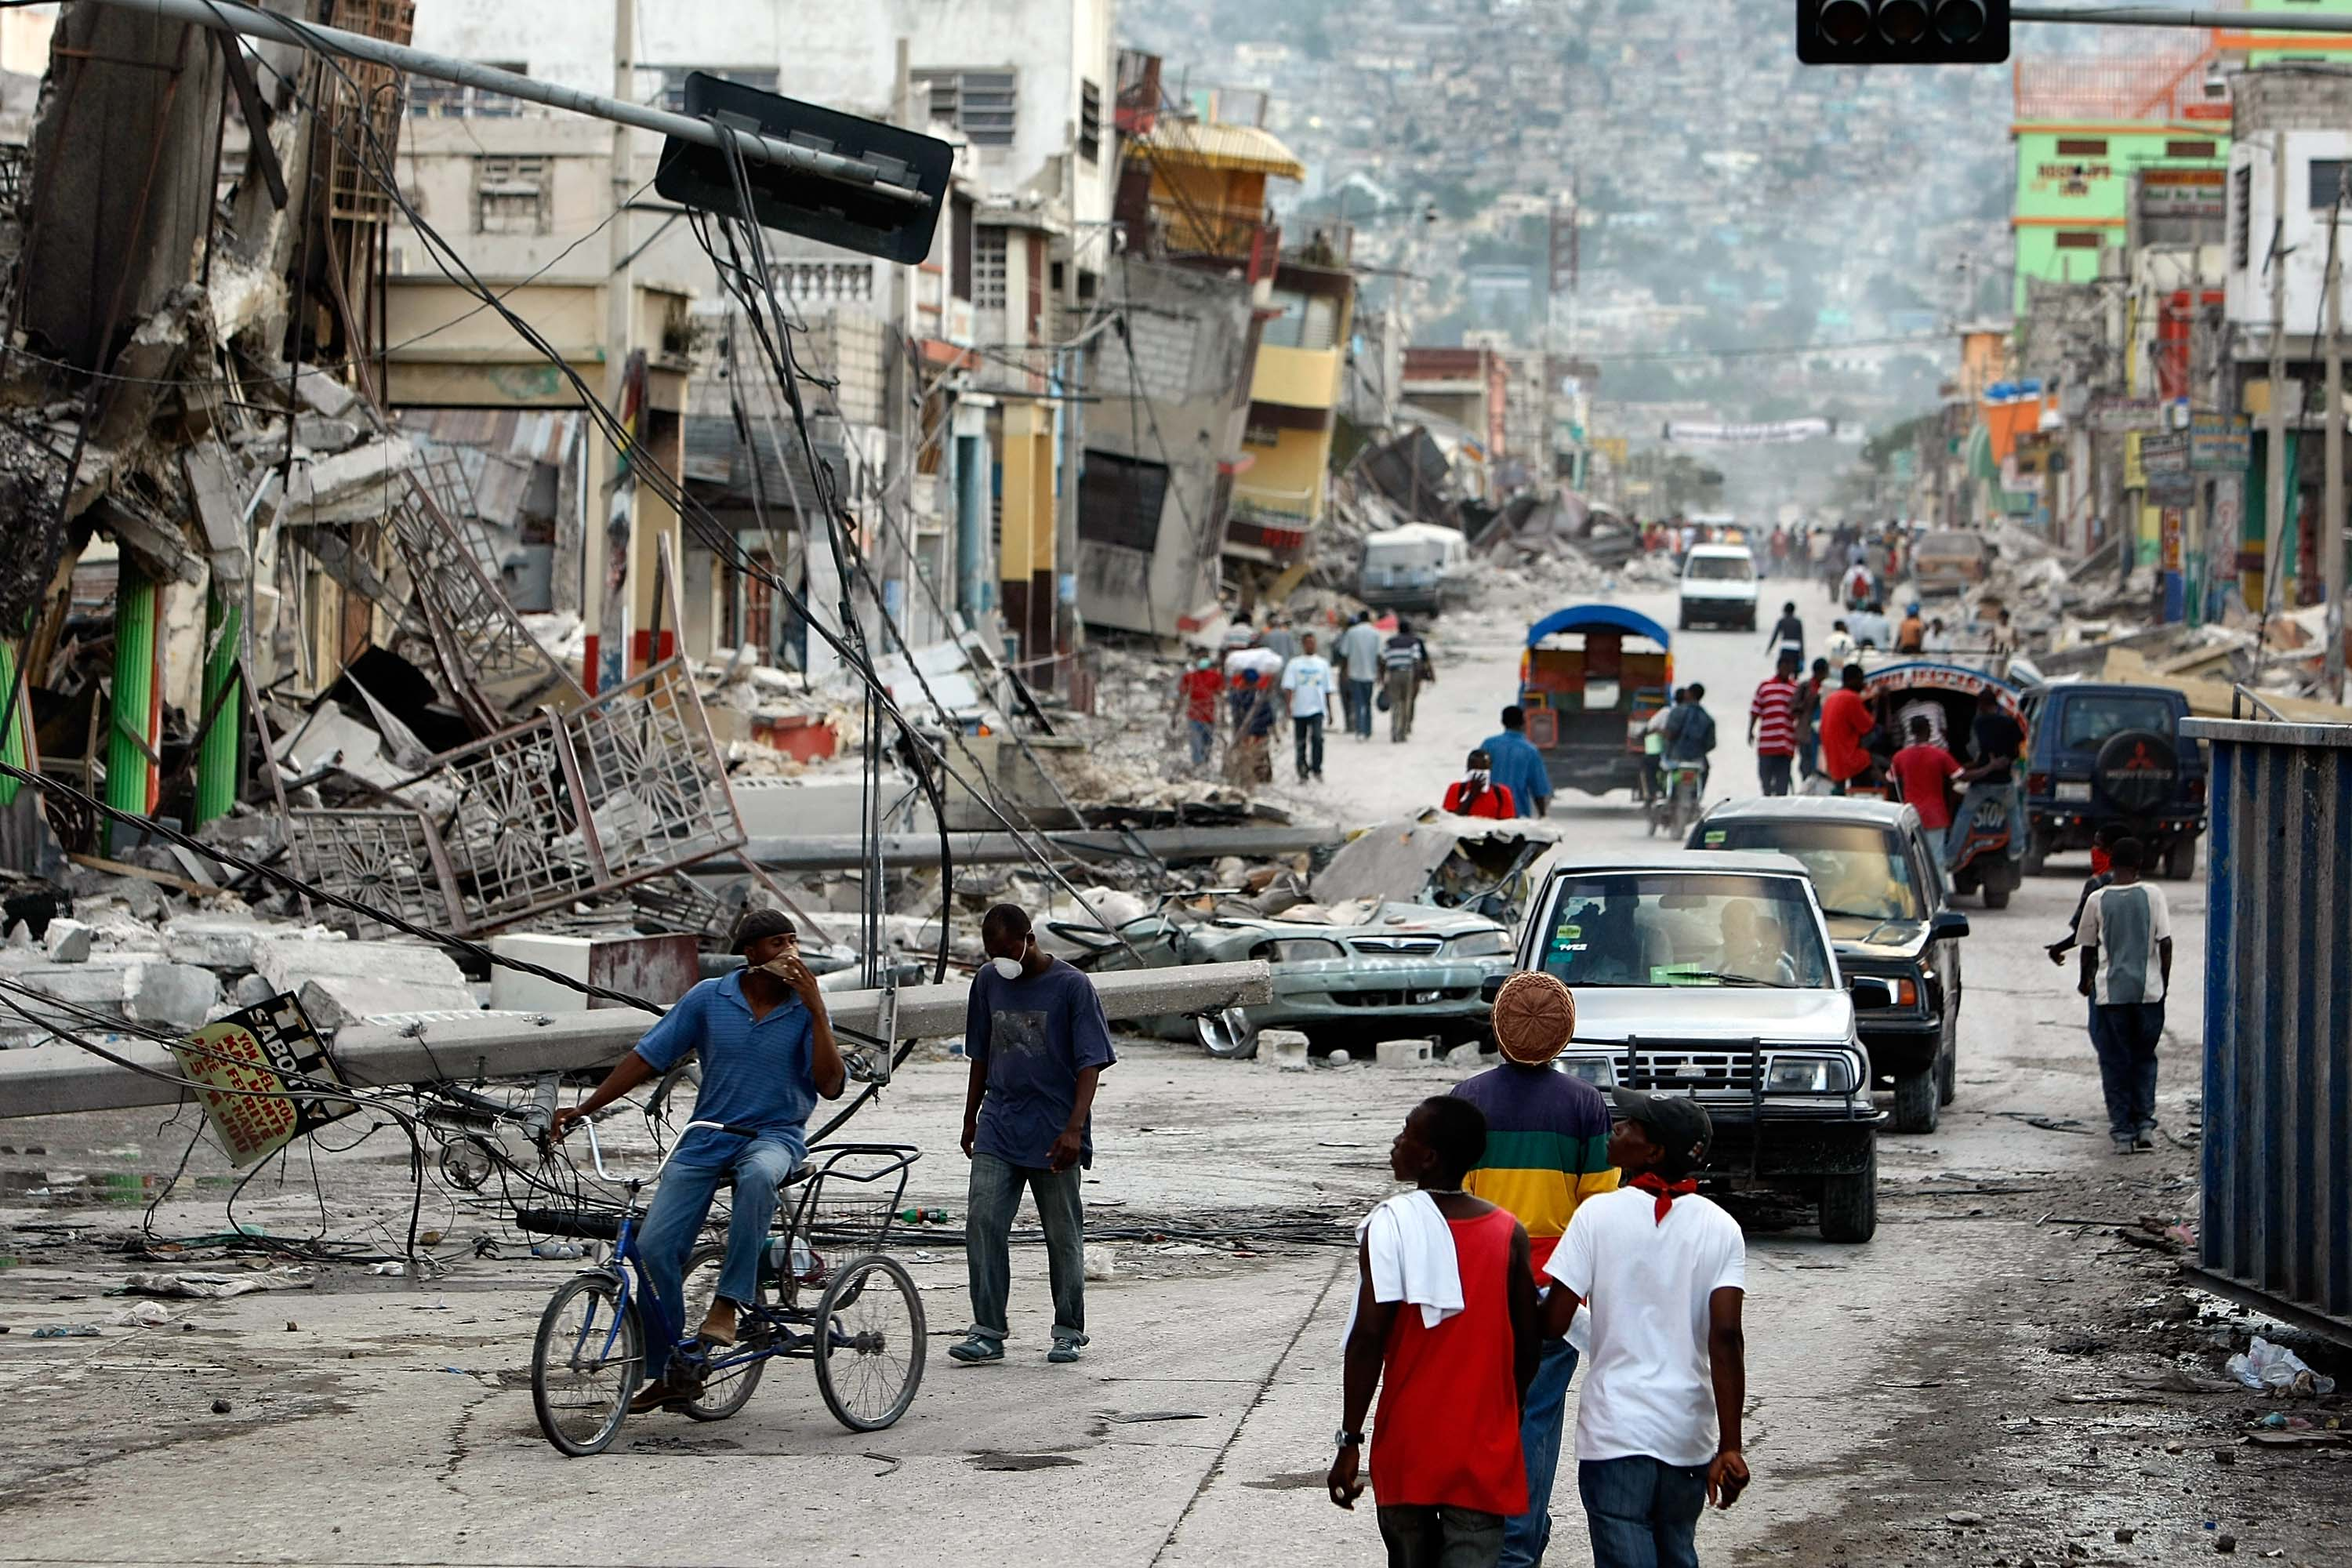 Destroyed buildings are seen after the massive earthquake Jon 16, 2010 in Port-au-Prince, Haiti.